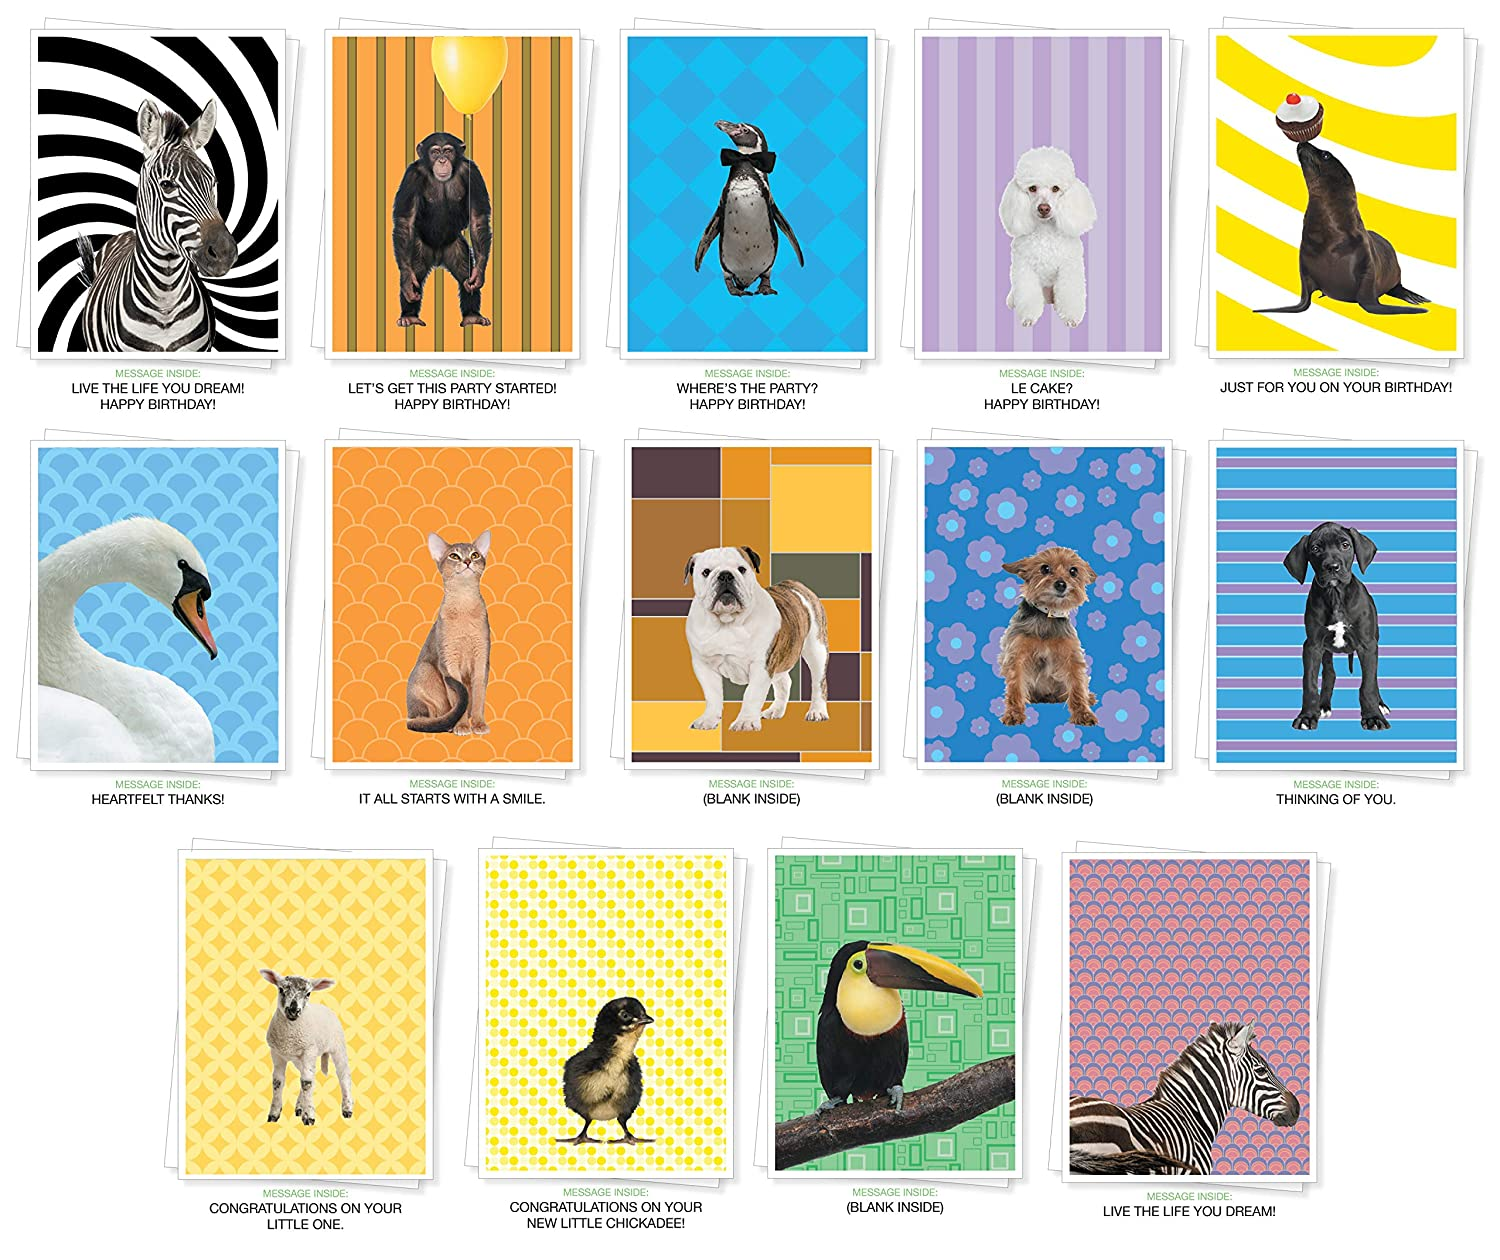 Assorted Animals Premium Greeting Cards - Bulk Set of 14 Cards Including: Birthday, Thank You, New Baby, Inspiration and Blank by Apartment 2 Cards B018NNK5IM